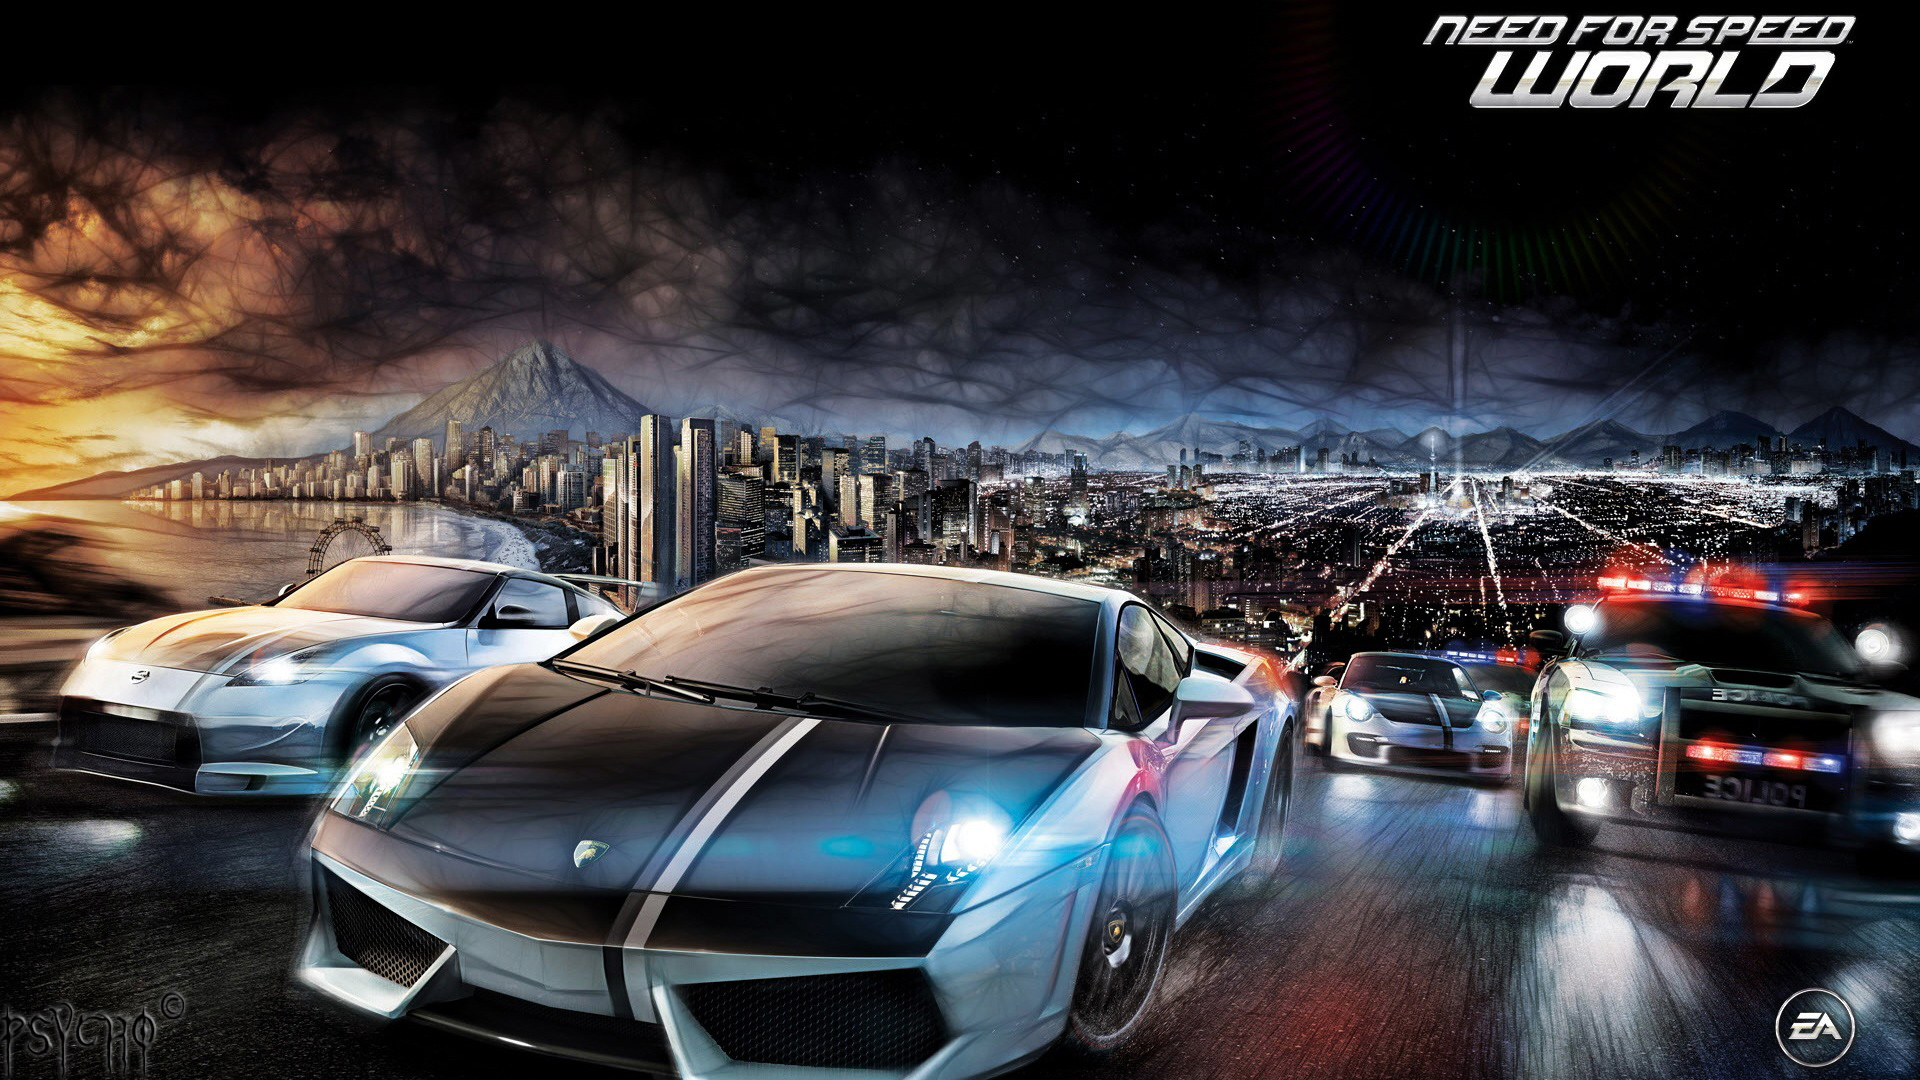 Speedy Car Wallpapers For Free Desktop Download 1920x1080